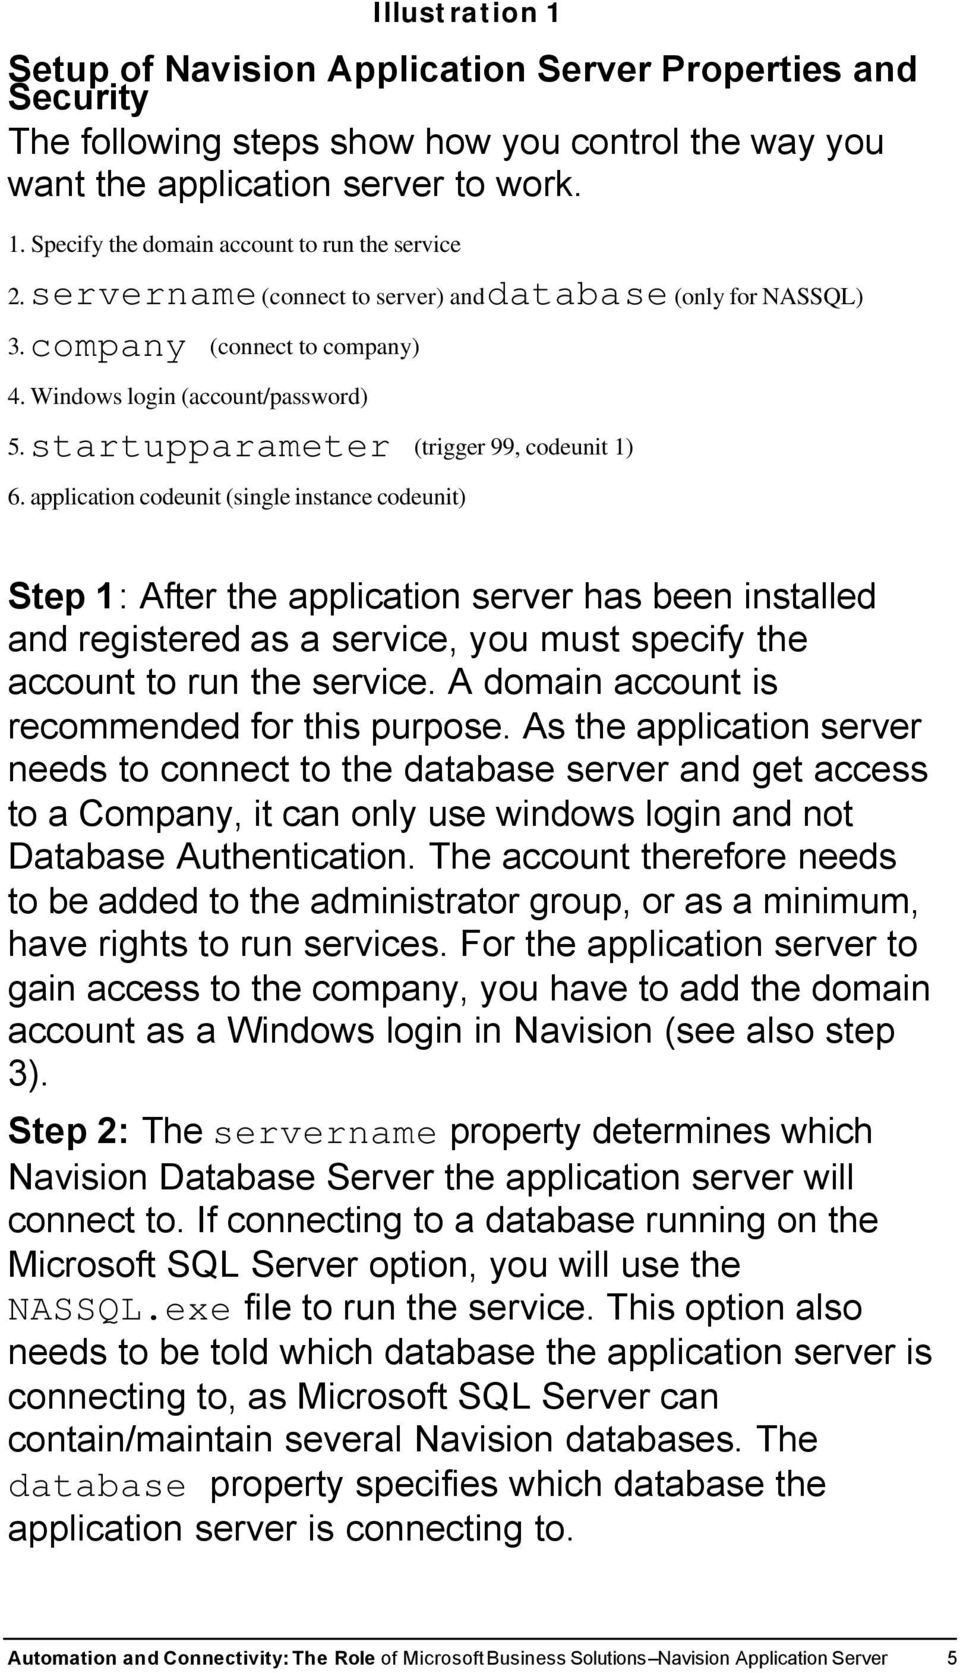 application codeunit (single instance codeunit) Step 1: After the application server has been installed and registered as a service, you must specify the account to run the service.